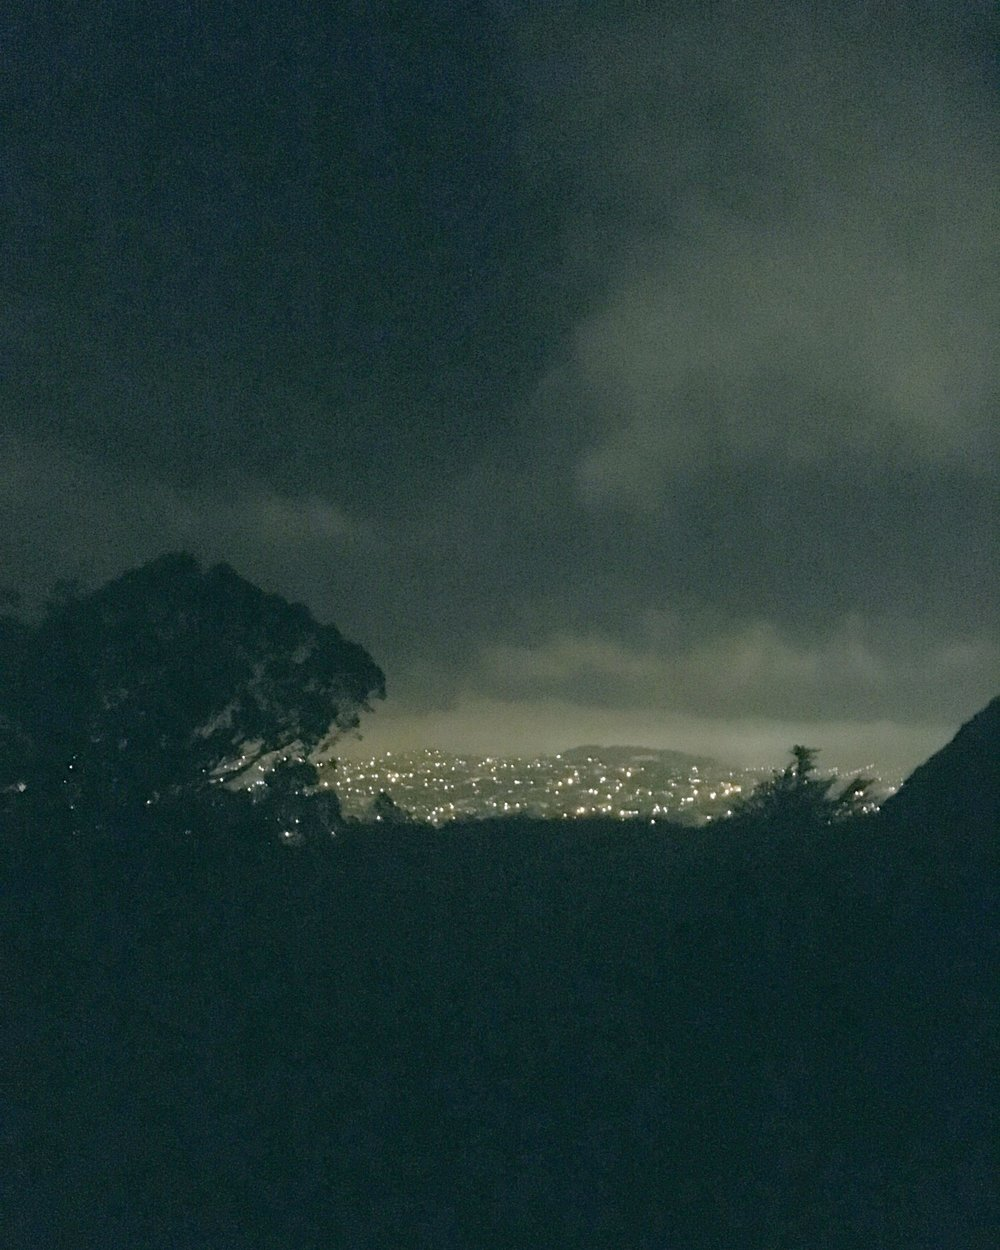 Bernal at night